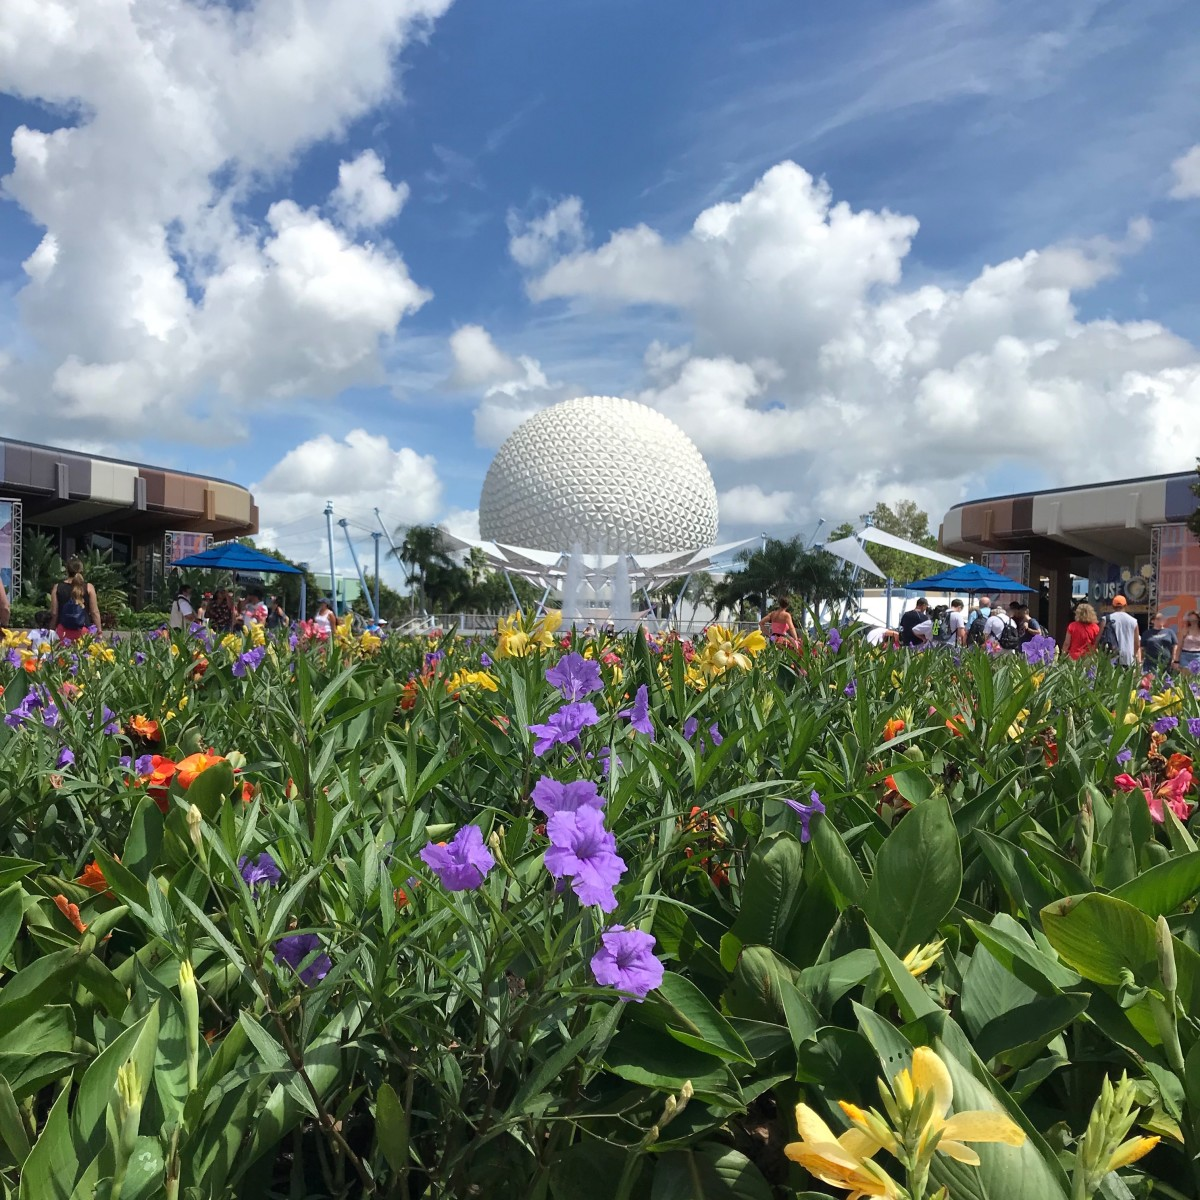 The flowers at Epcot were stunning.